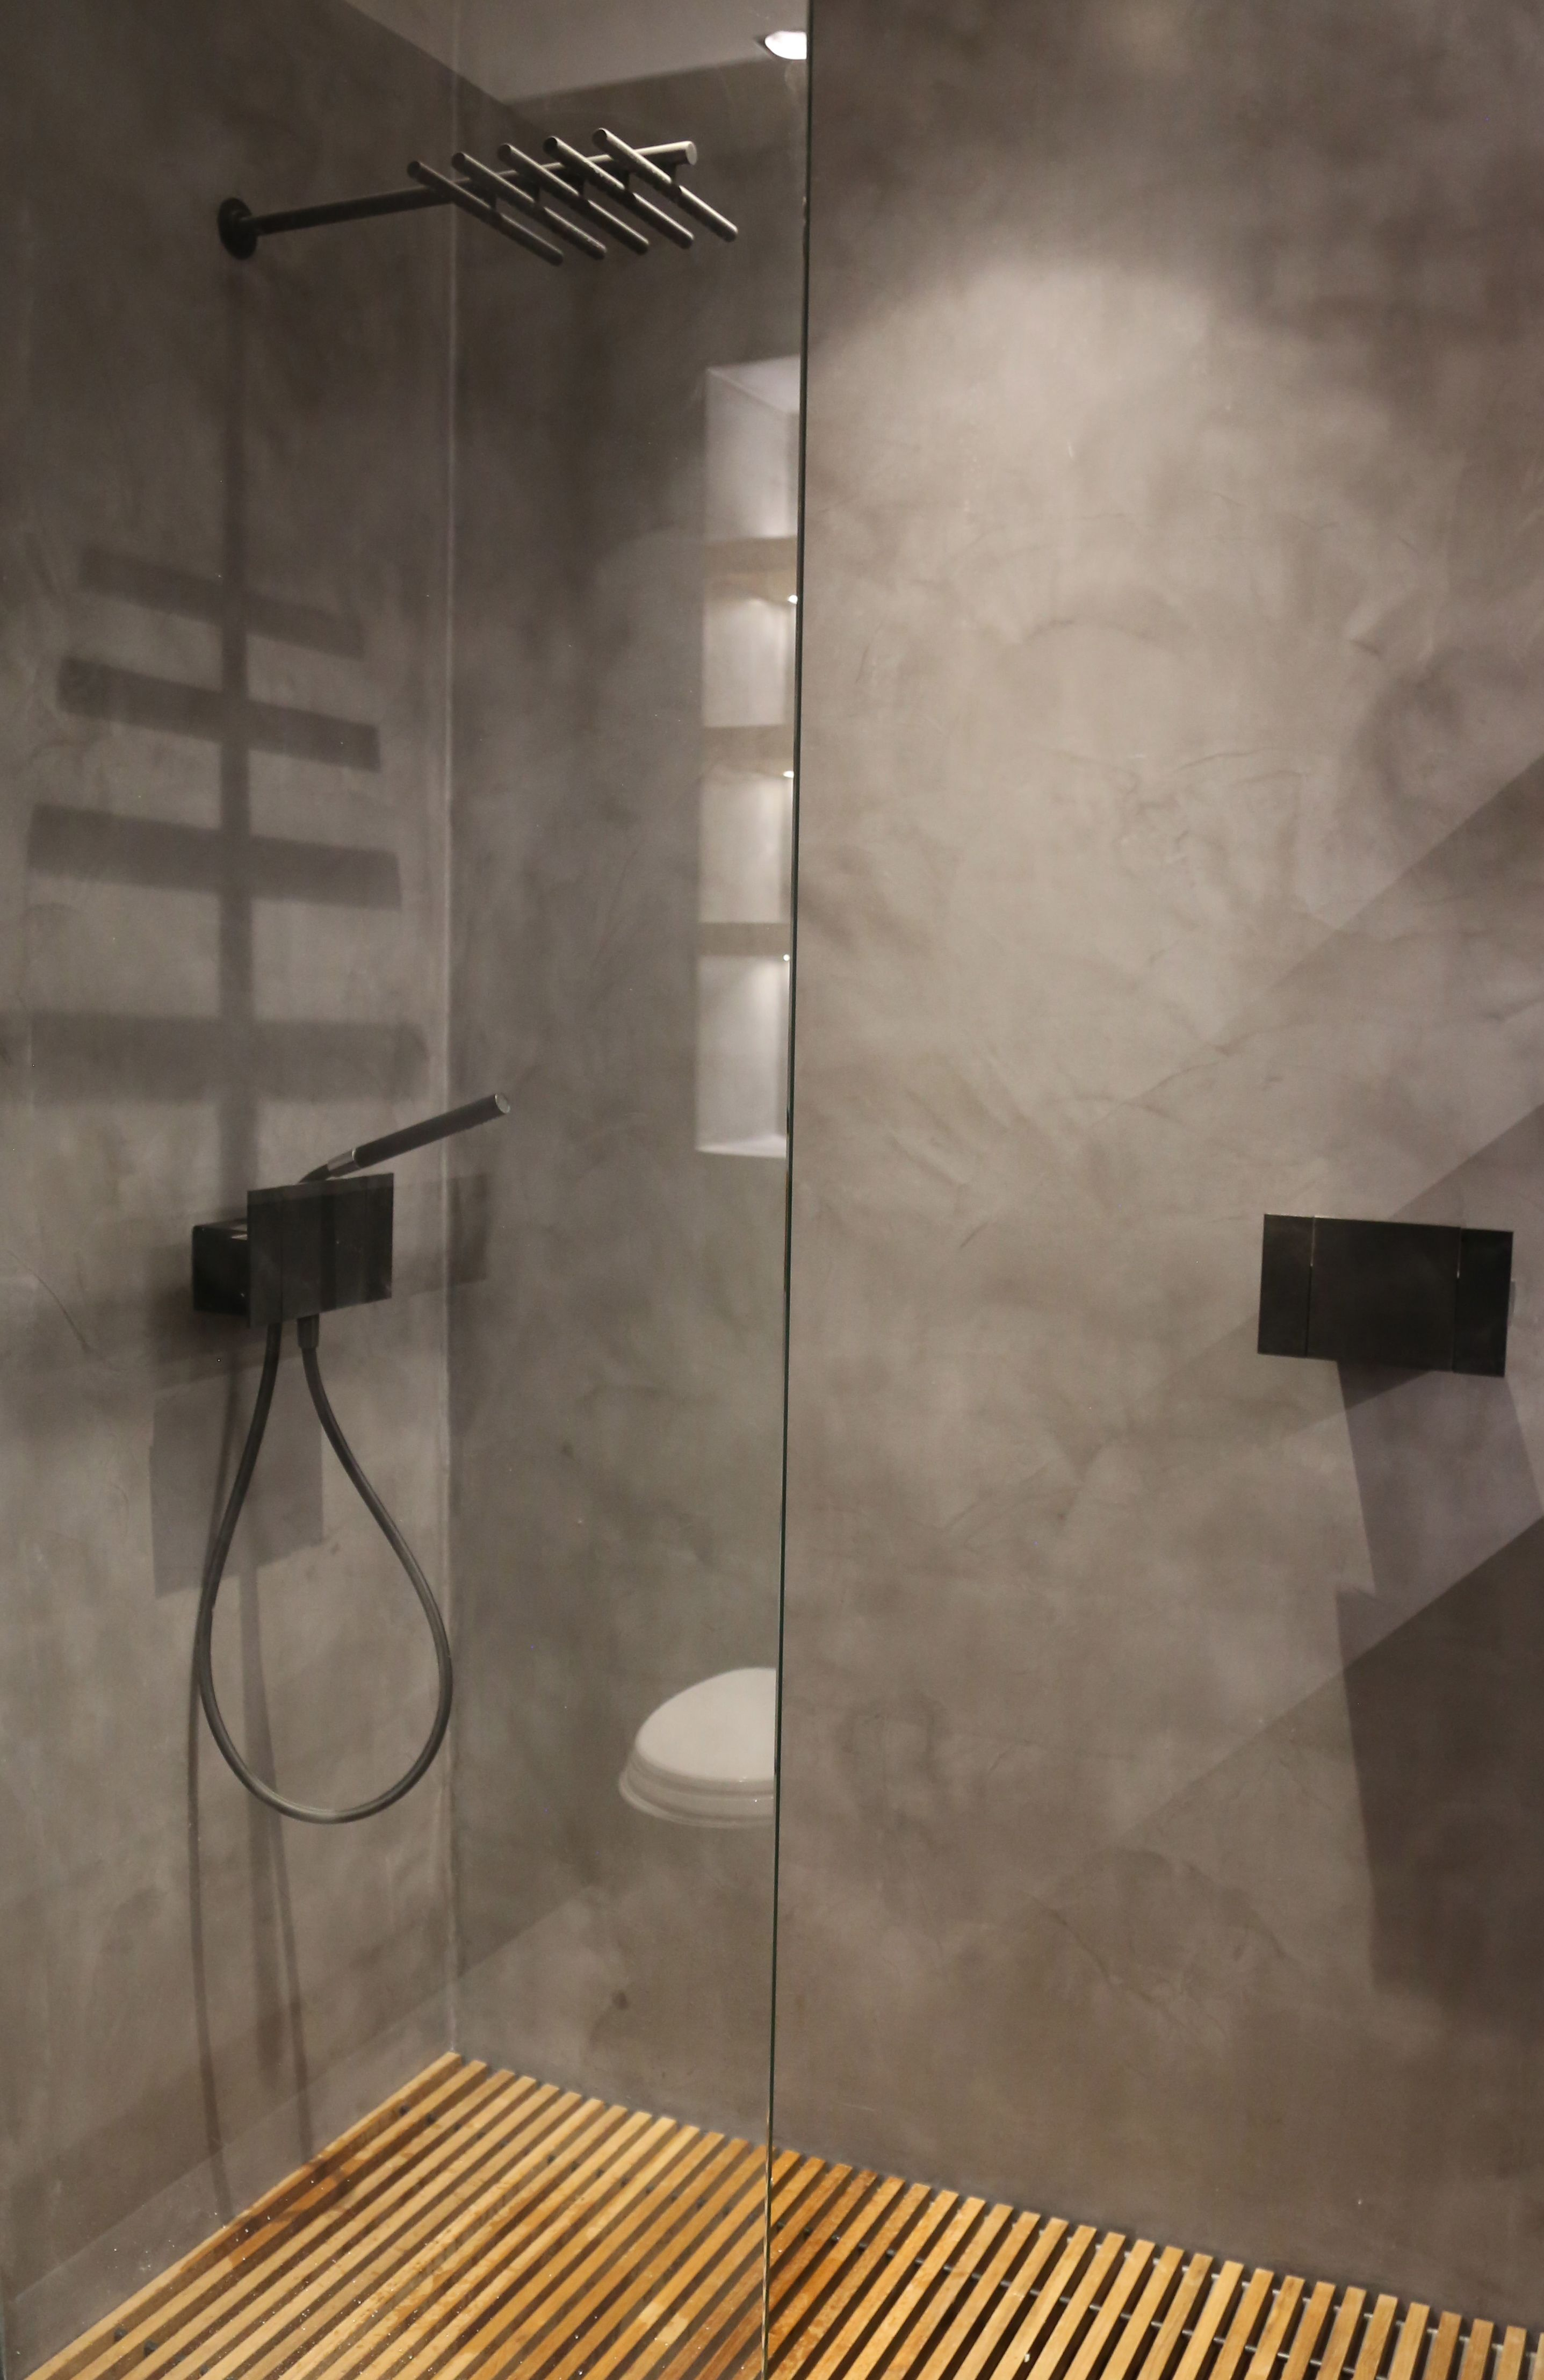 The Polished Concrete Floor And Walls Contrast With Warmth Of Wooden Shower Tray Italian Units Designed By P Pinteriors